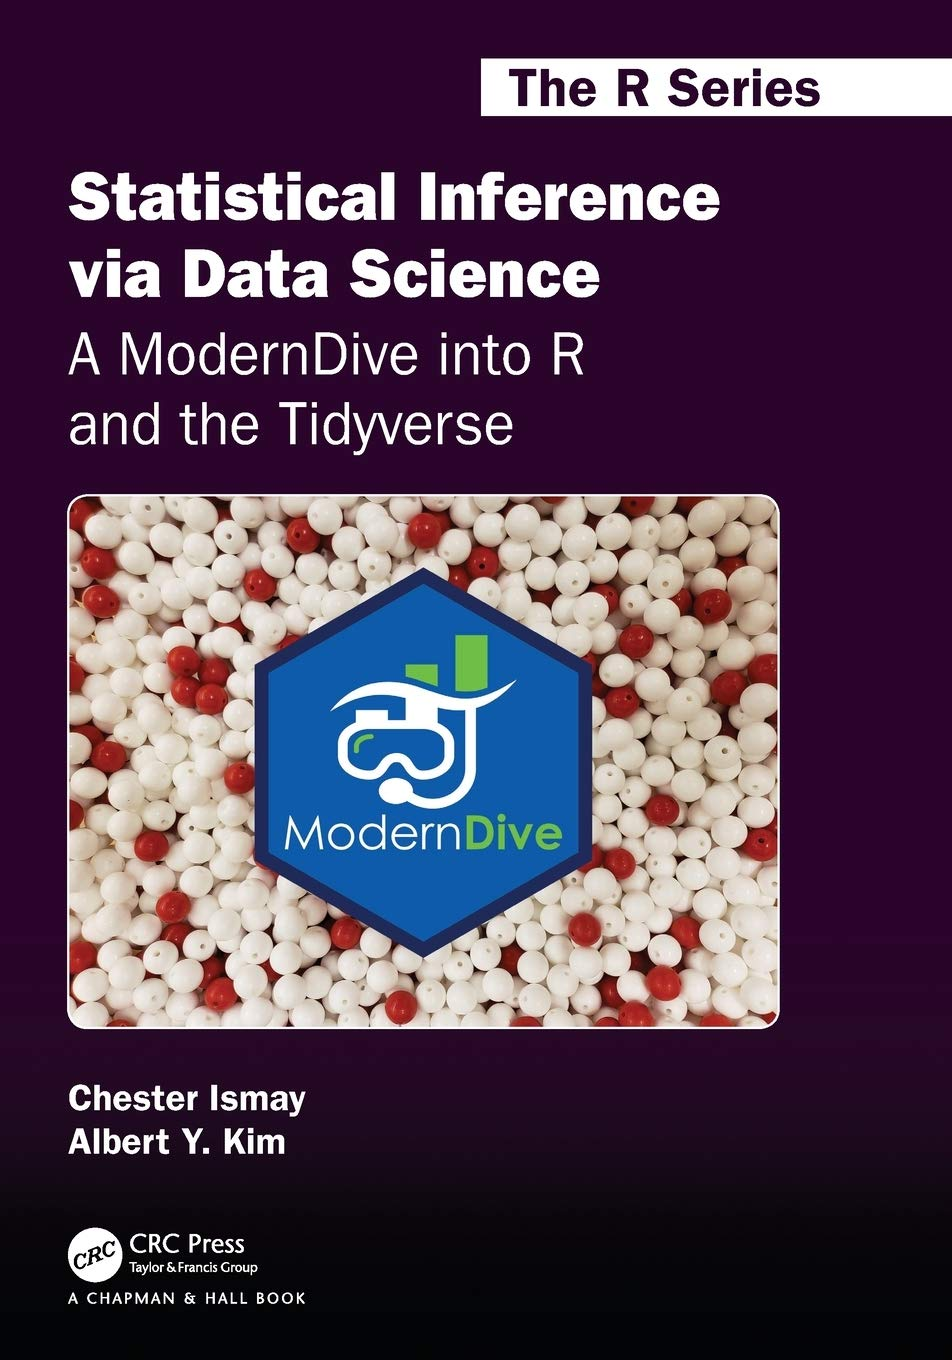 Statistical Inference via Data Science: A ModernDive into R and the Tidyverse